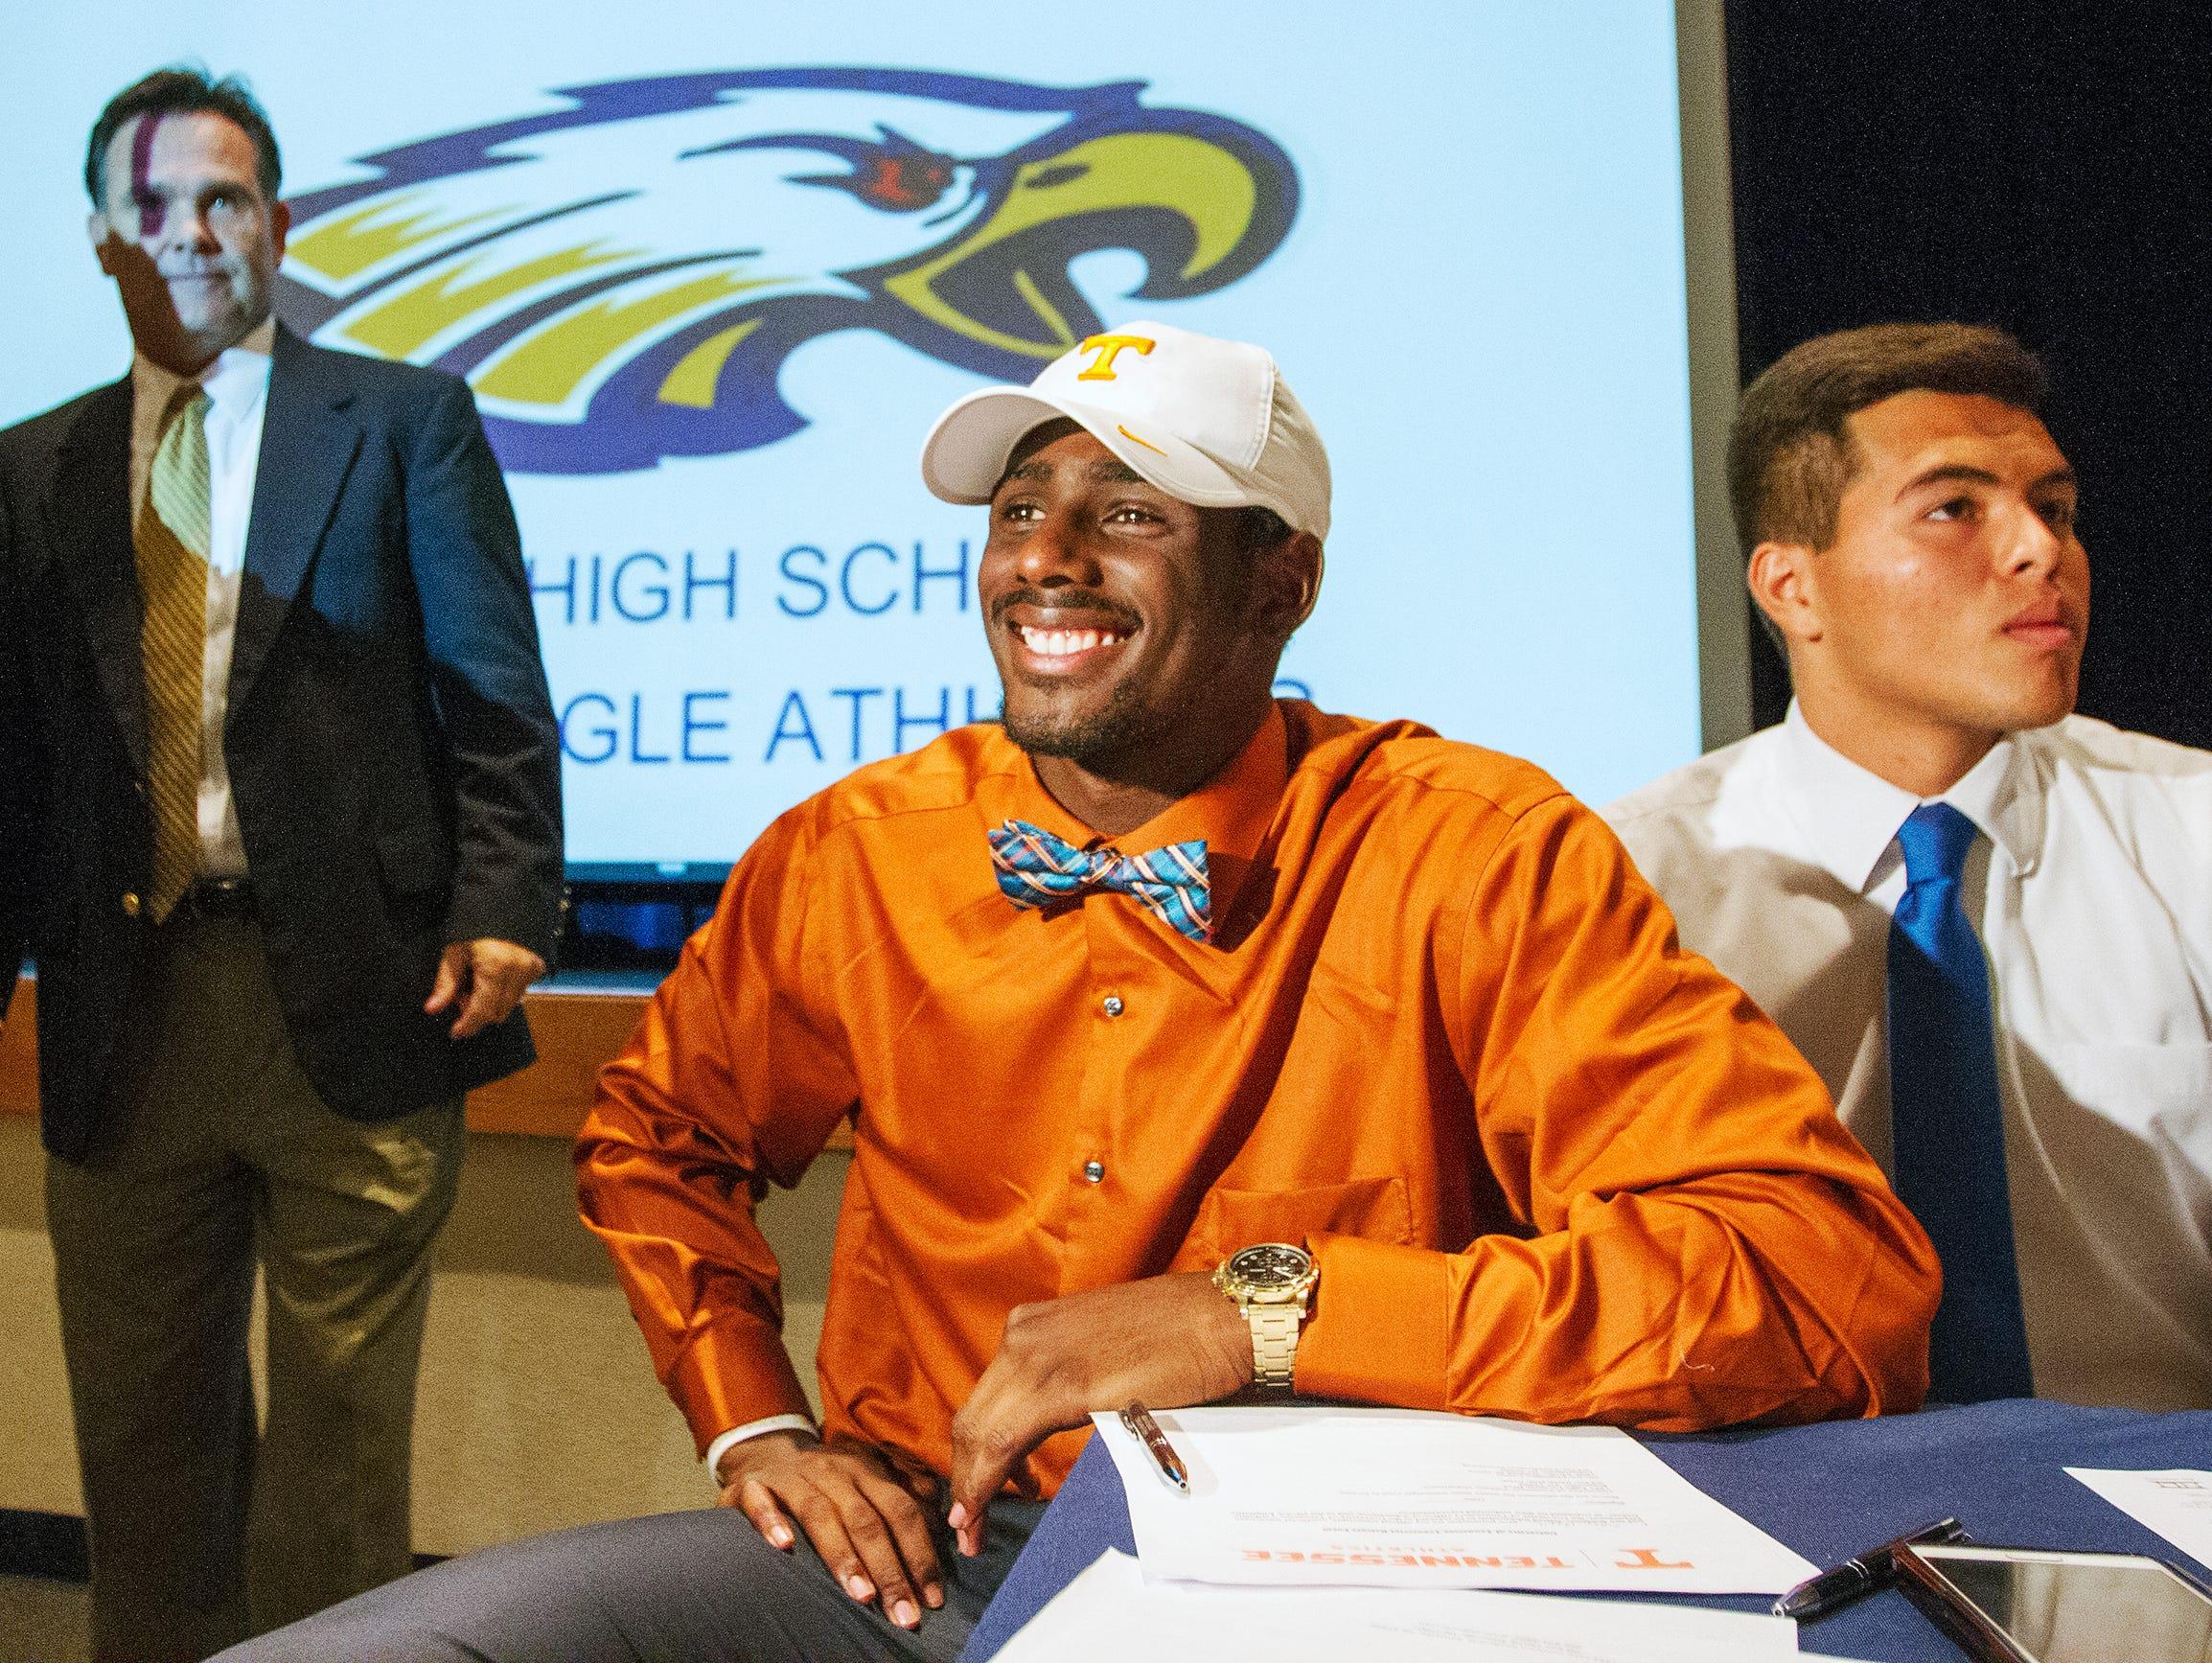 Naples High School football players Tyler Byrd, center, and Jerry Nunez, right, were among the school's athletes who signed National Letters of Intent Wednesday at the school. Byrd is going to the University of Tennessee and Nunez to Indiana State University. Head coach Bill Kramer is at left.